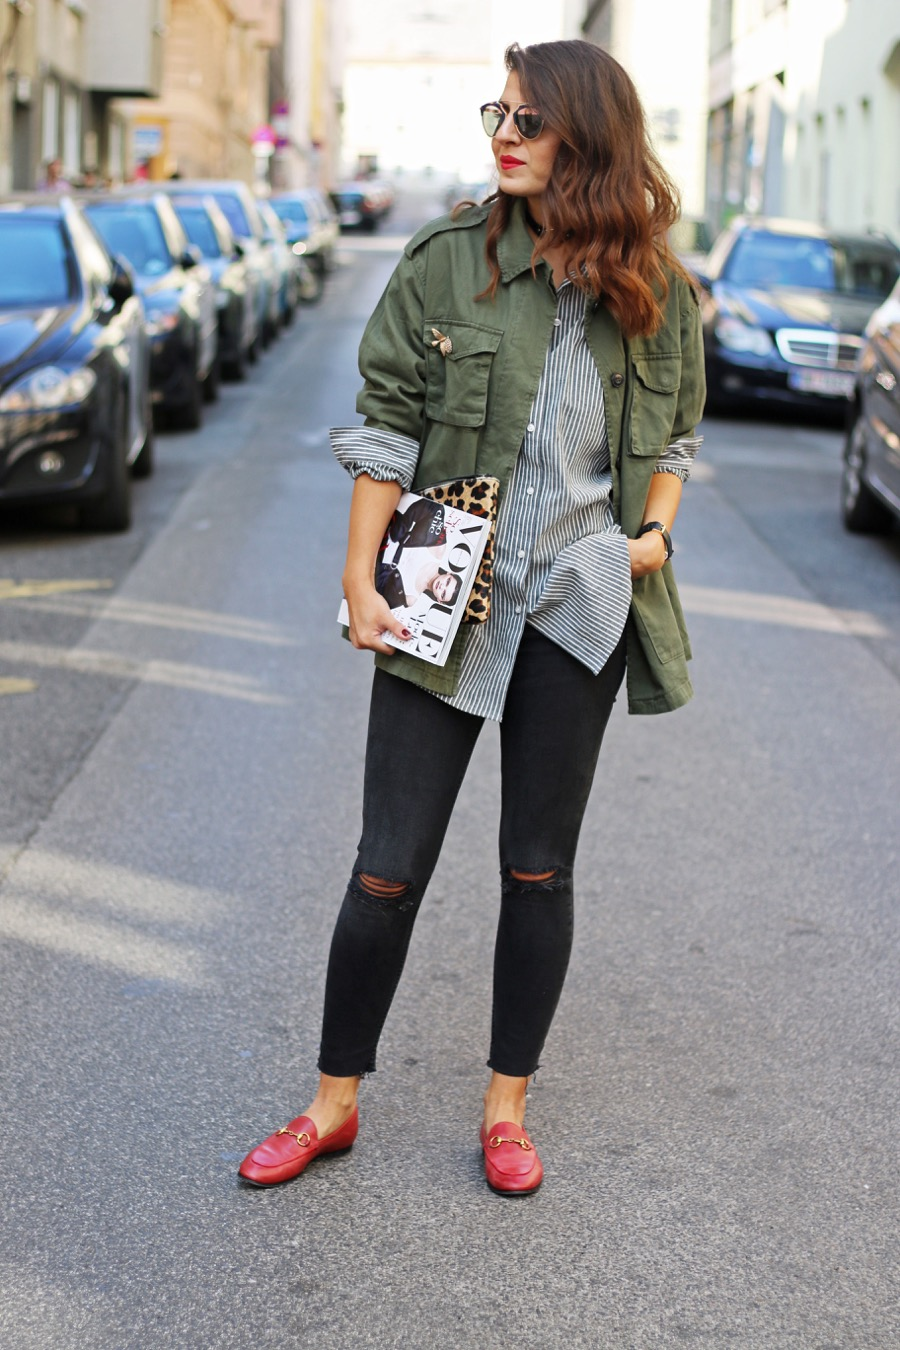 gucci_jordaan_ripped_jeans_fashionnes